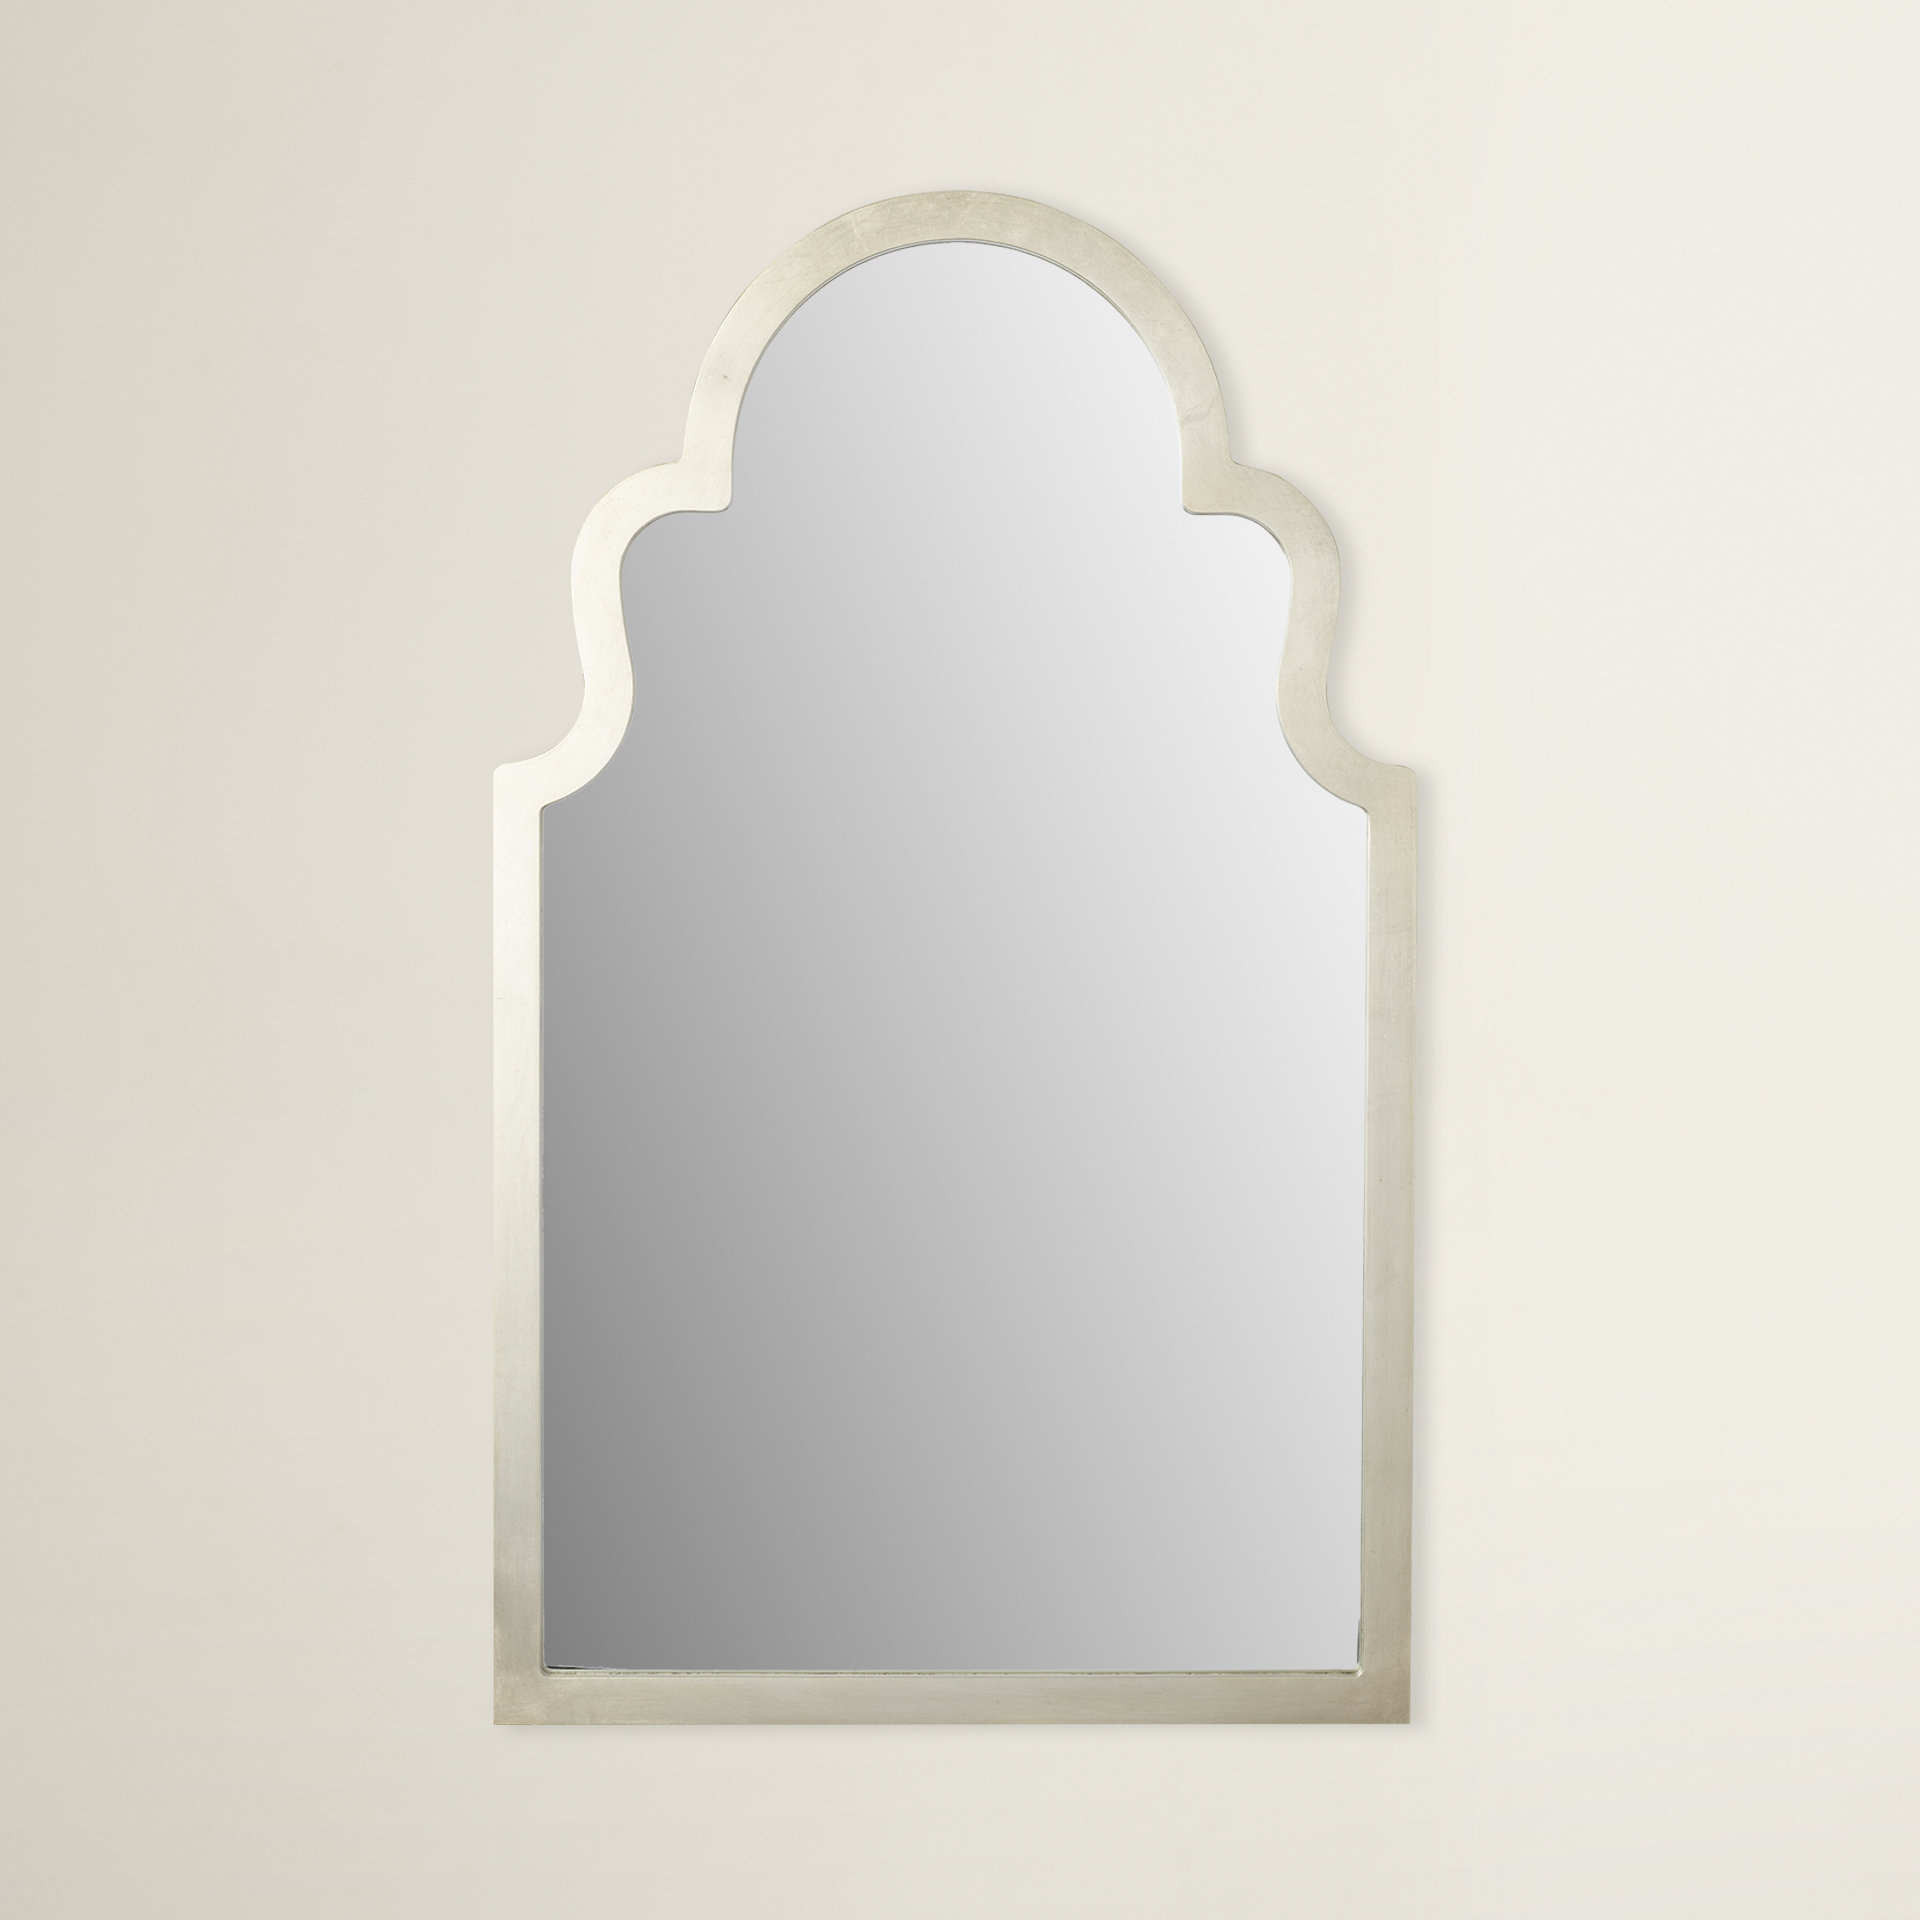 Arch Top Vertical Wall Mirror Intended For Arch Vertical Wall Mirrors (Image 4 of 20)